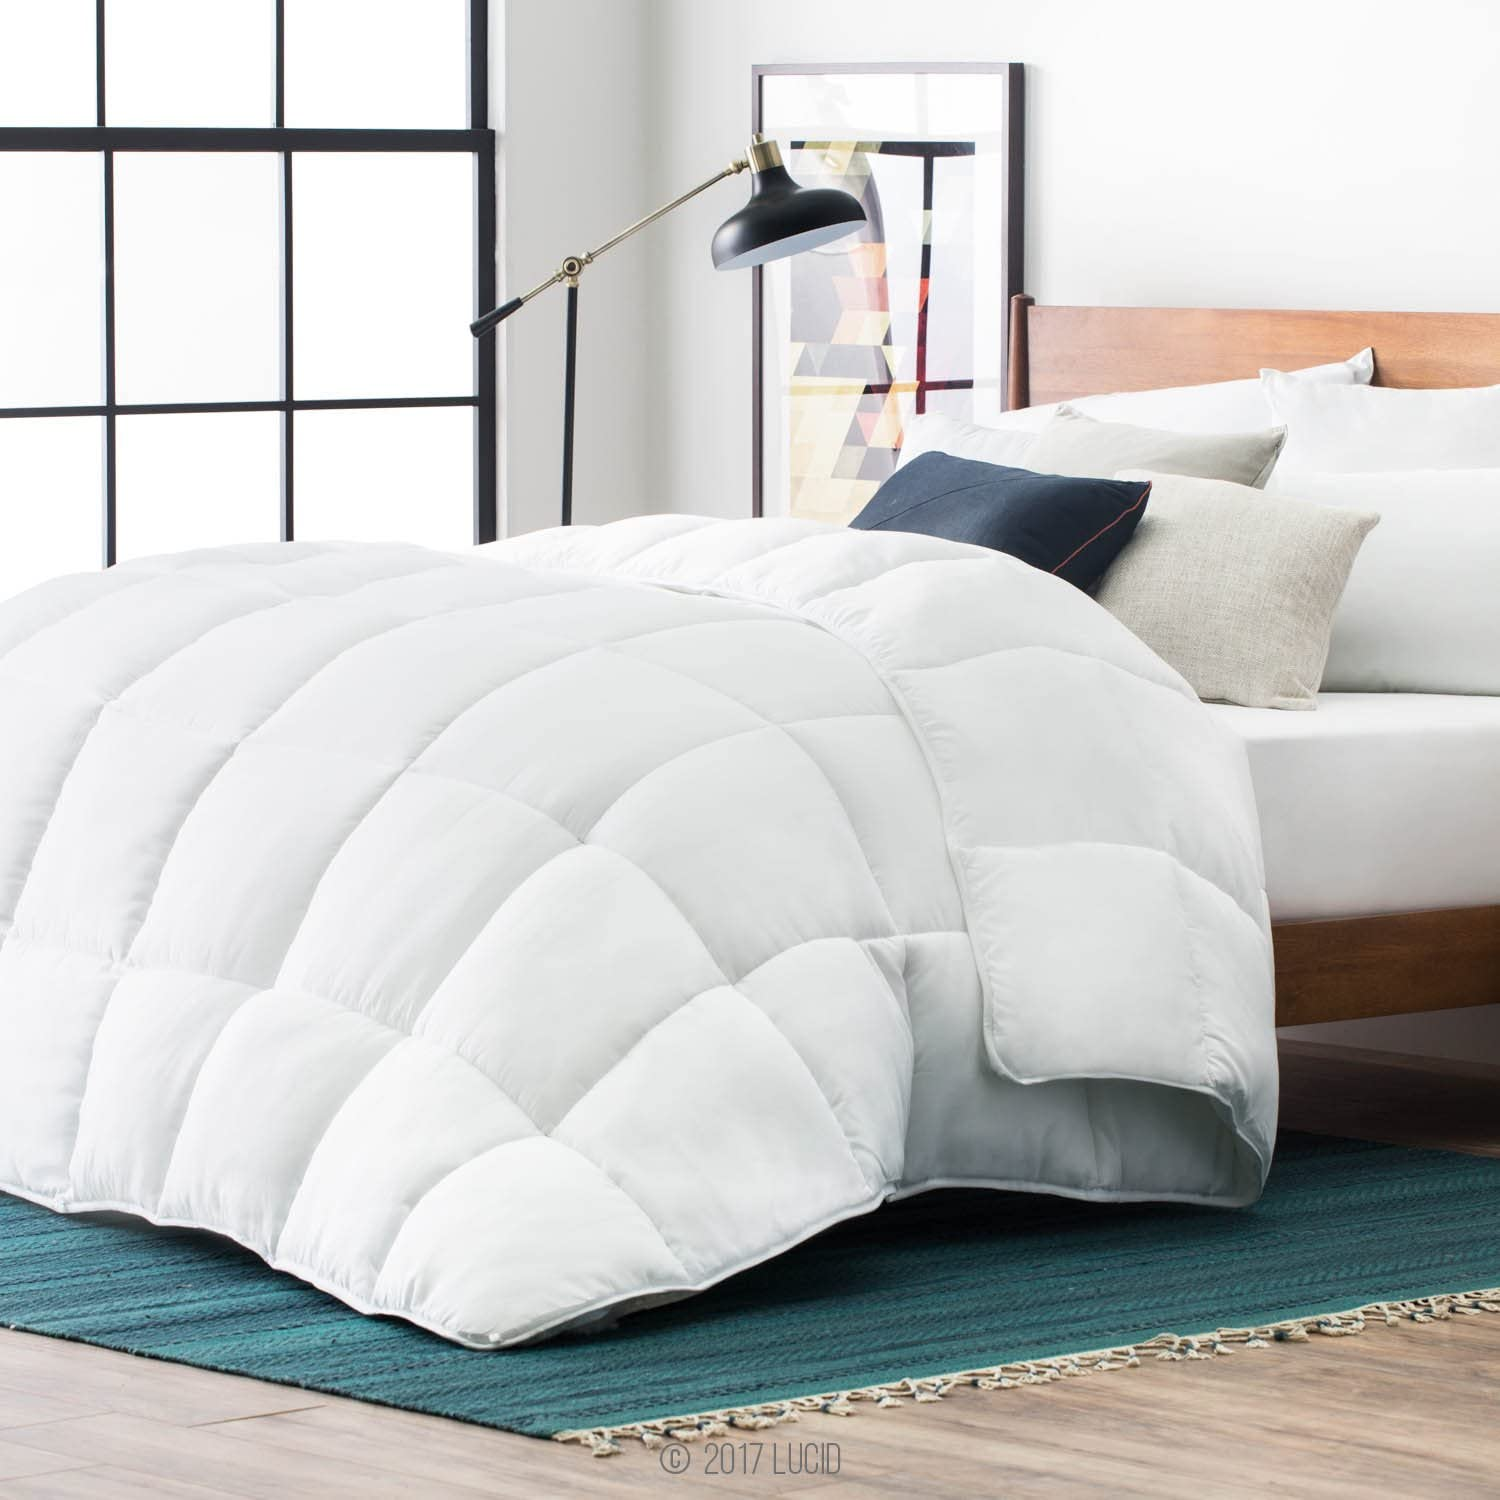 LUCID Alternative Comforter Hypoallergenic-All Season-400 GSM-Ultra Soft and Cozy-8 Duvet Loops-Box Stitched-3 Year Warranty-Machine Washable-Queen, White